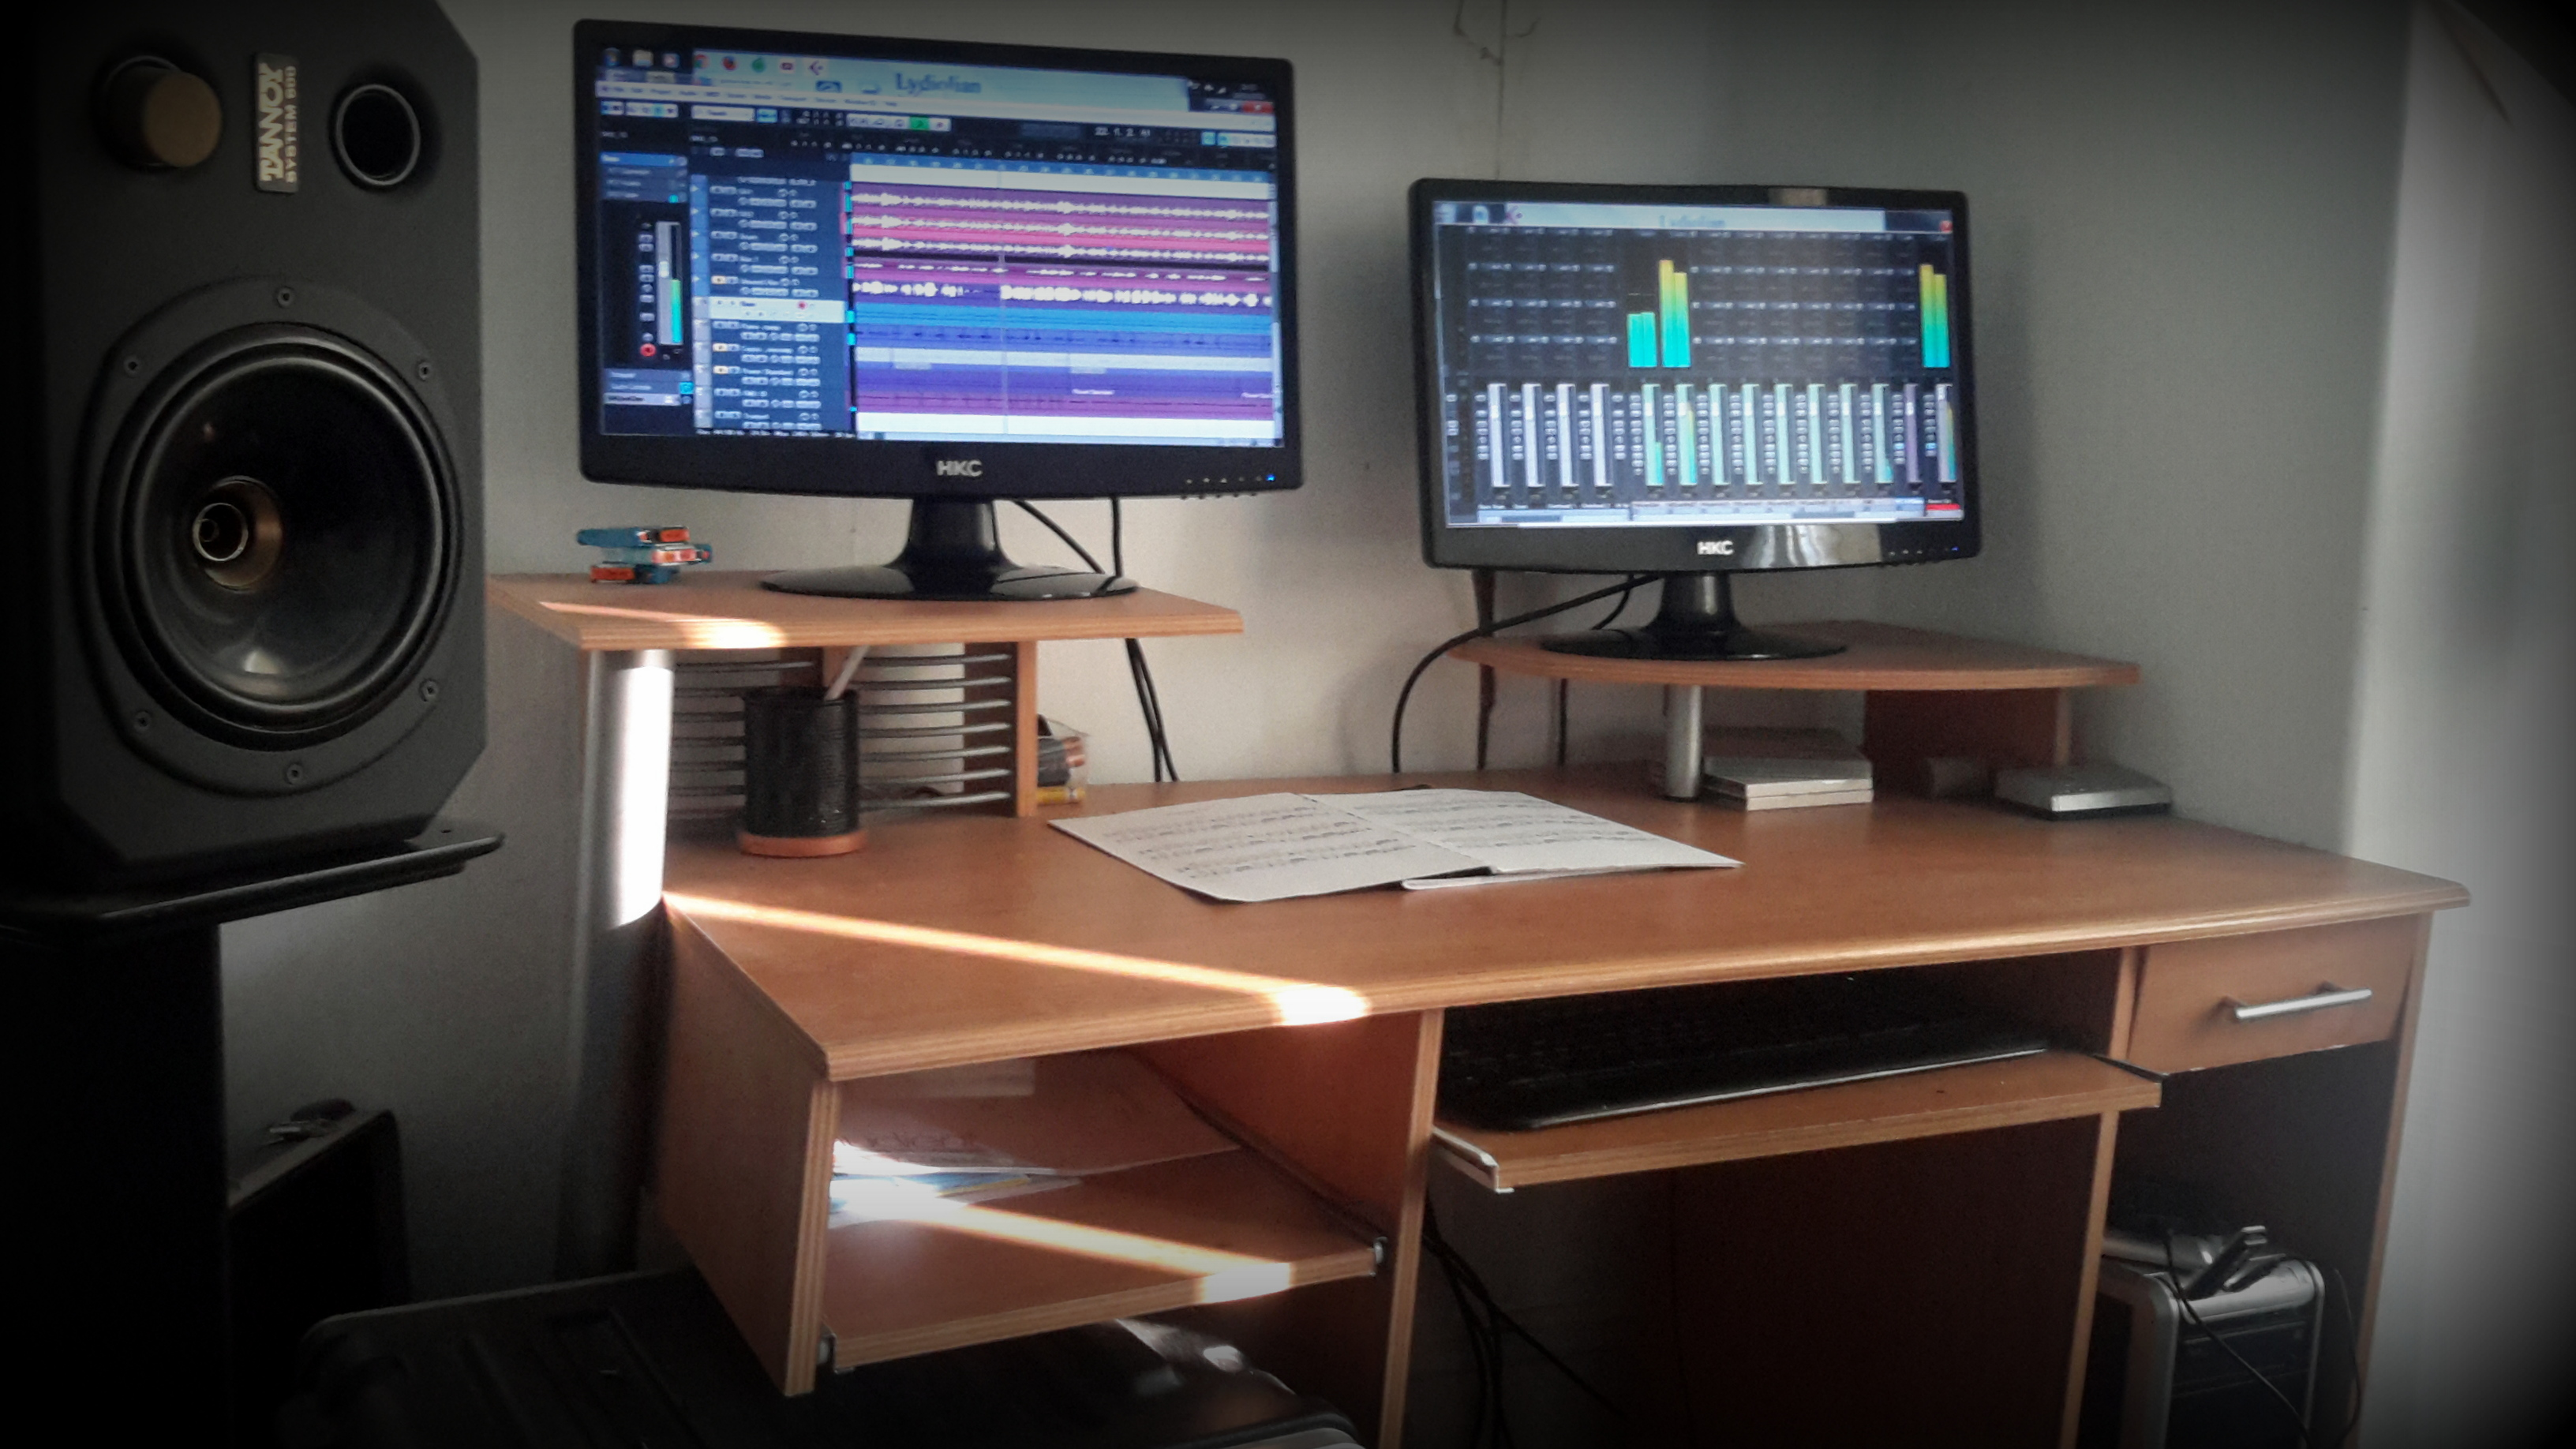 Studio computer running a session